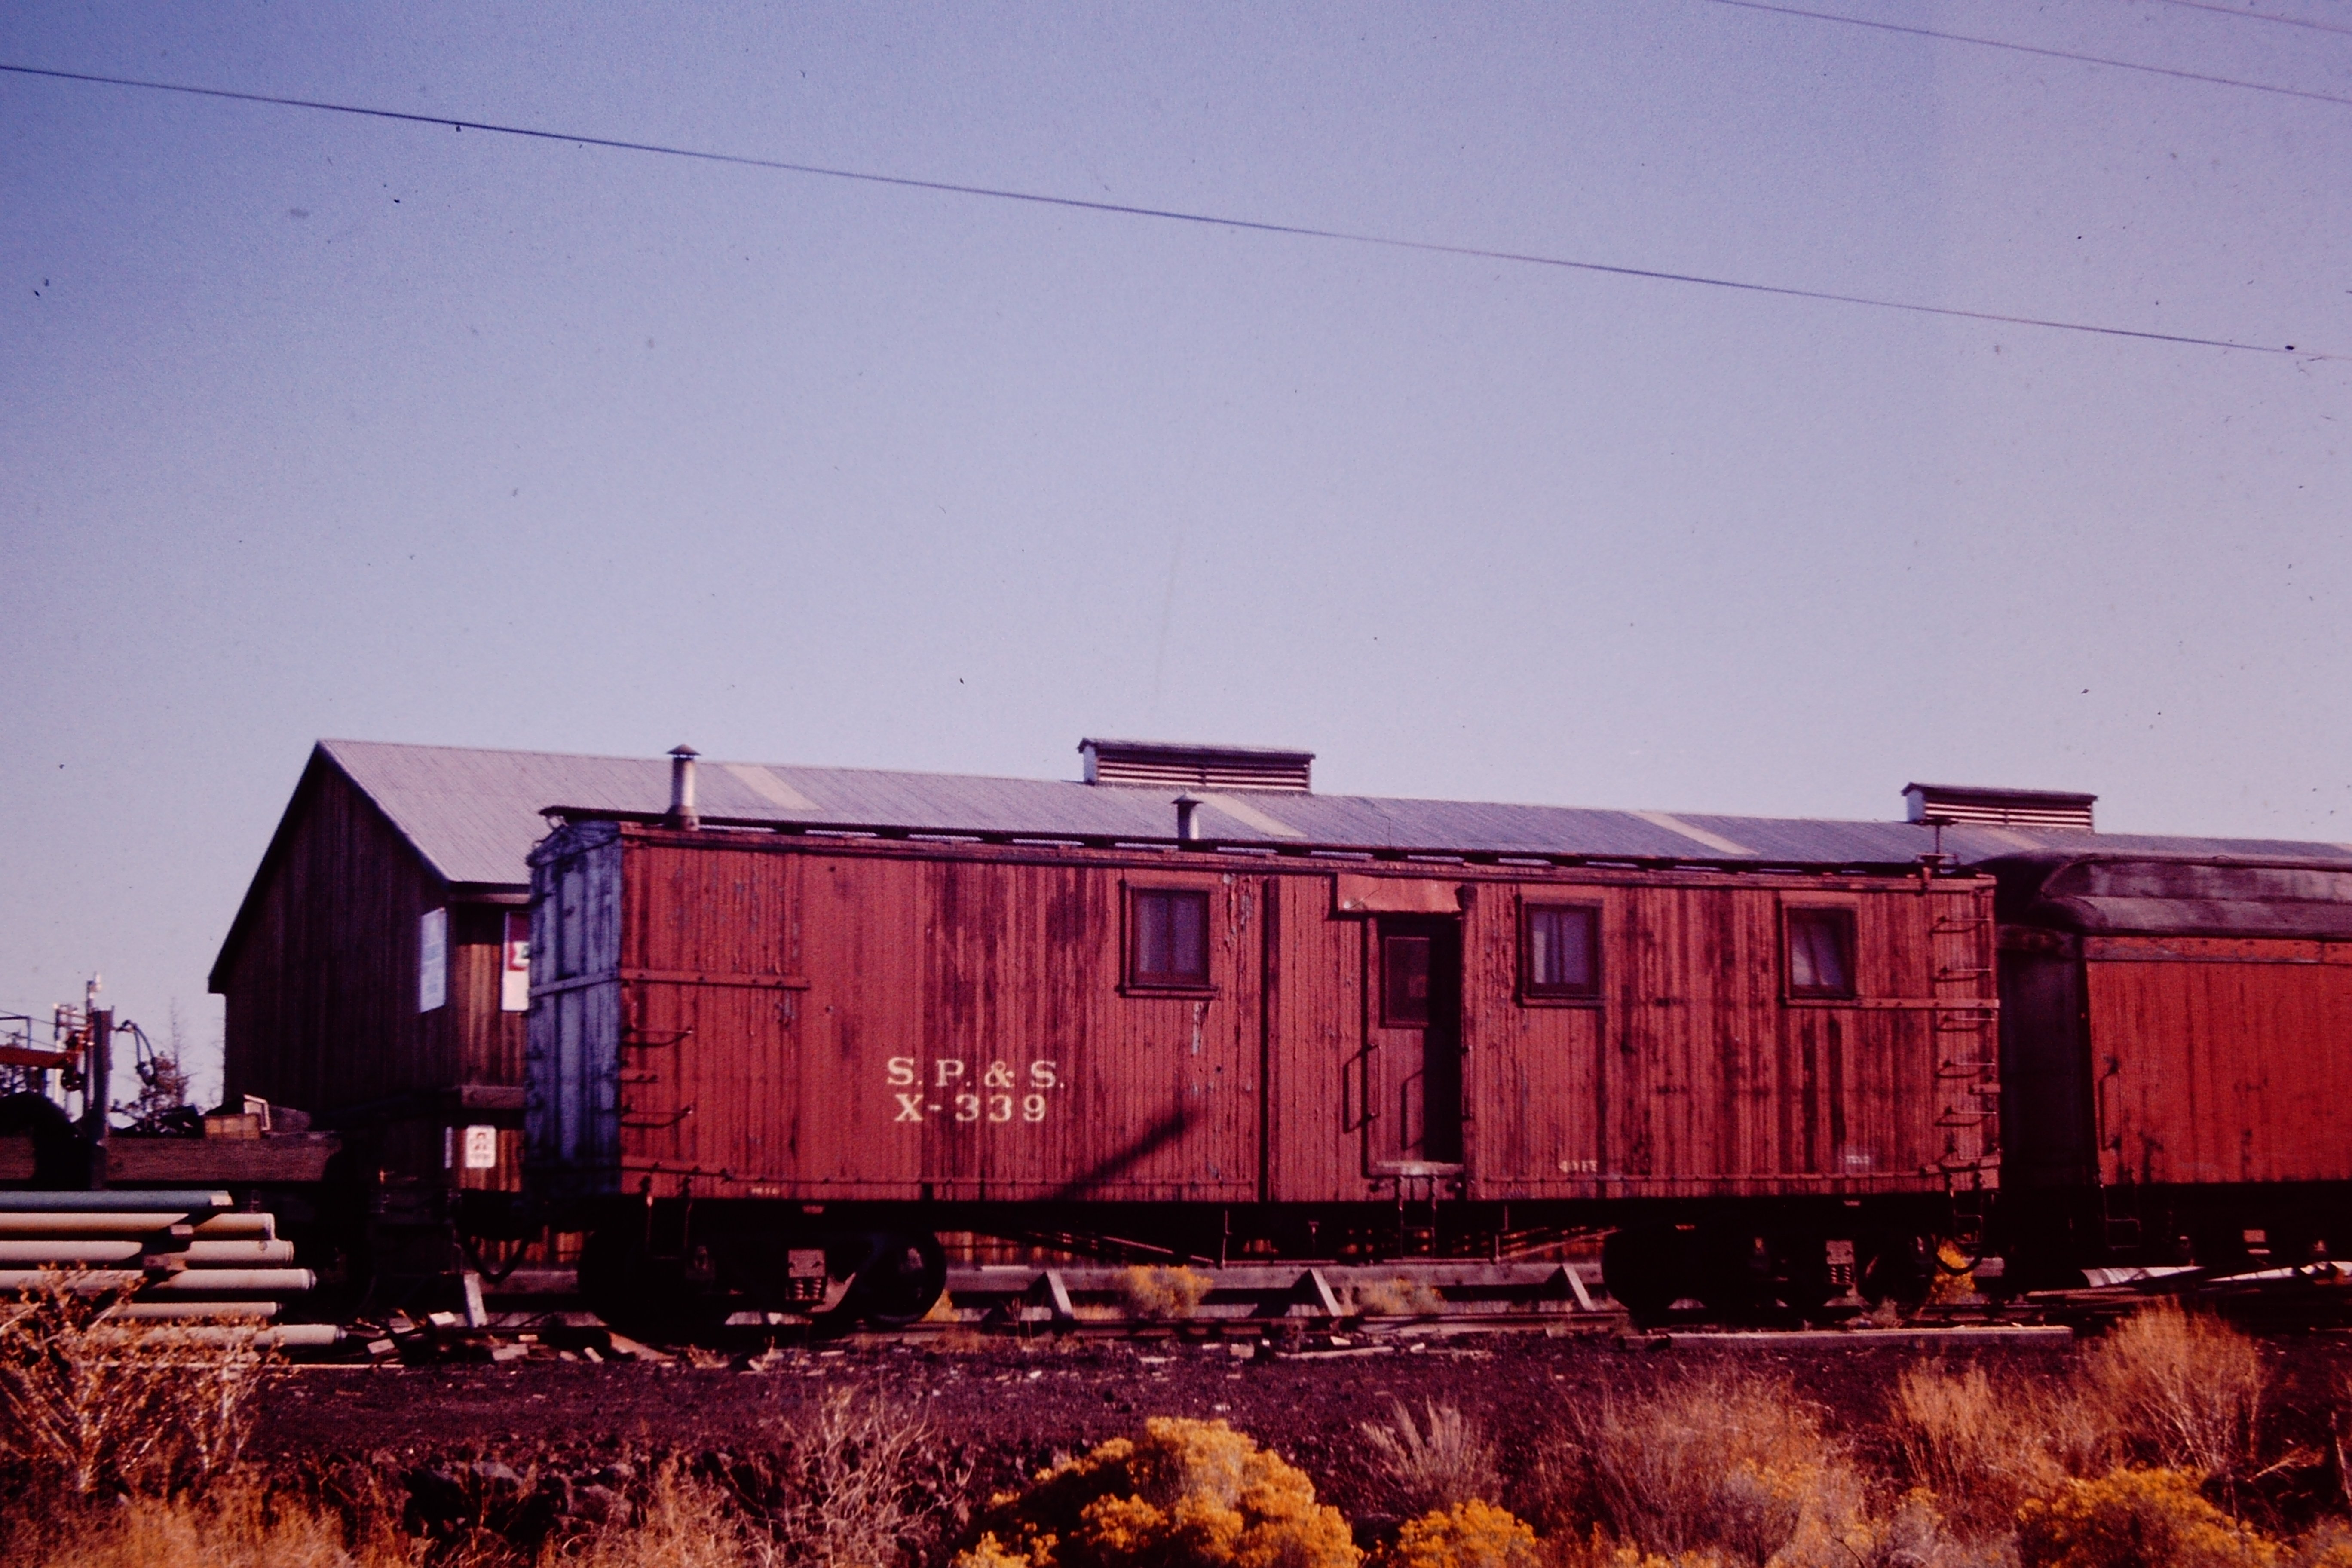 Wood boxcar turned into a sleeper